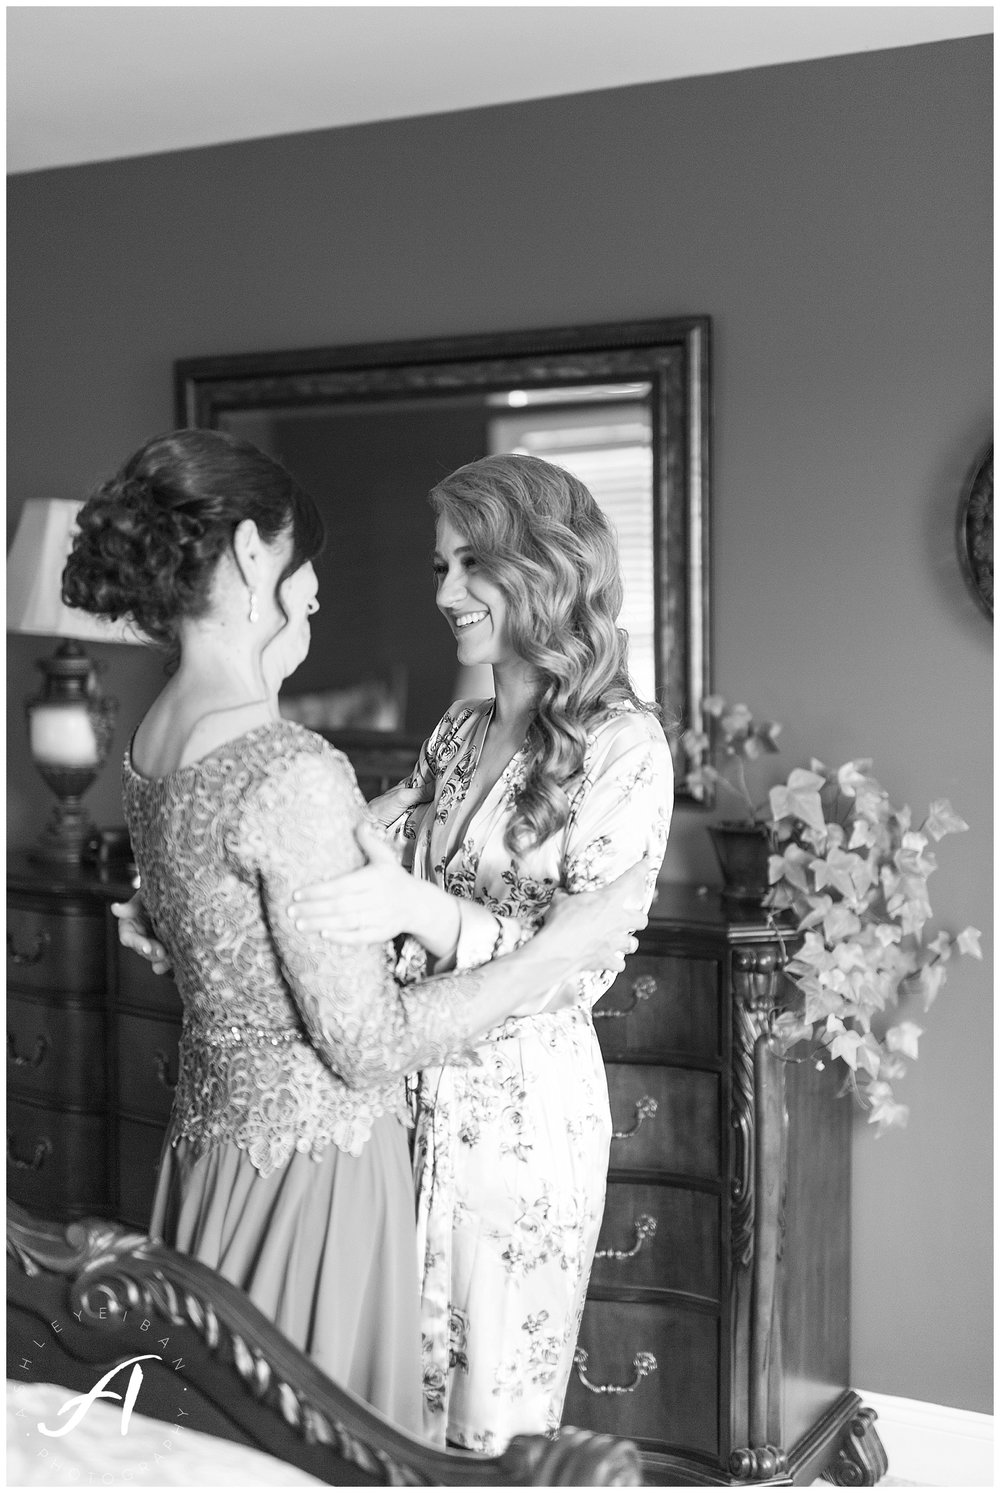 Stress Free Wedding Planning || Wedding Day Getting Ready || Ashley Eiban Photography || Lynchburg Wedding Photographer || www.ashleyeiban.com